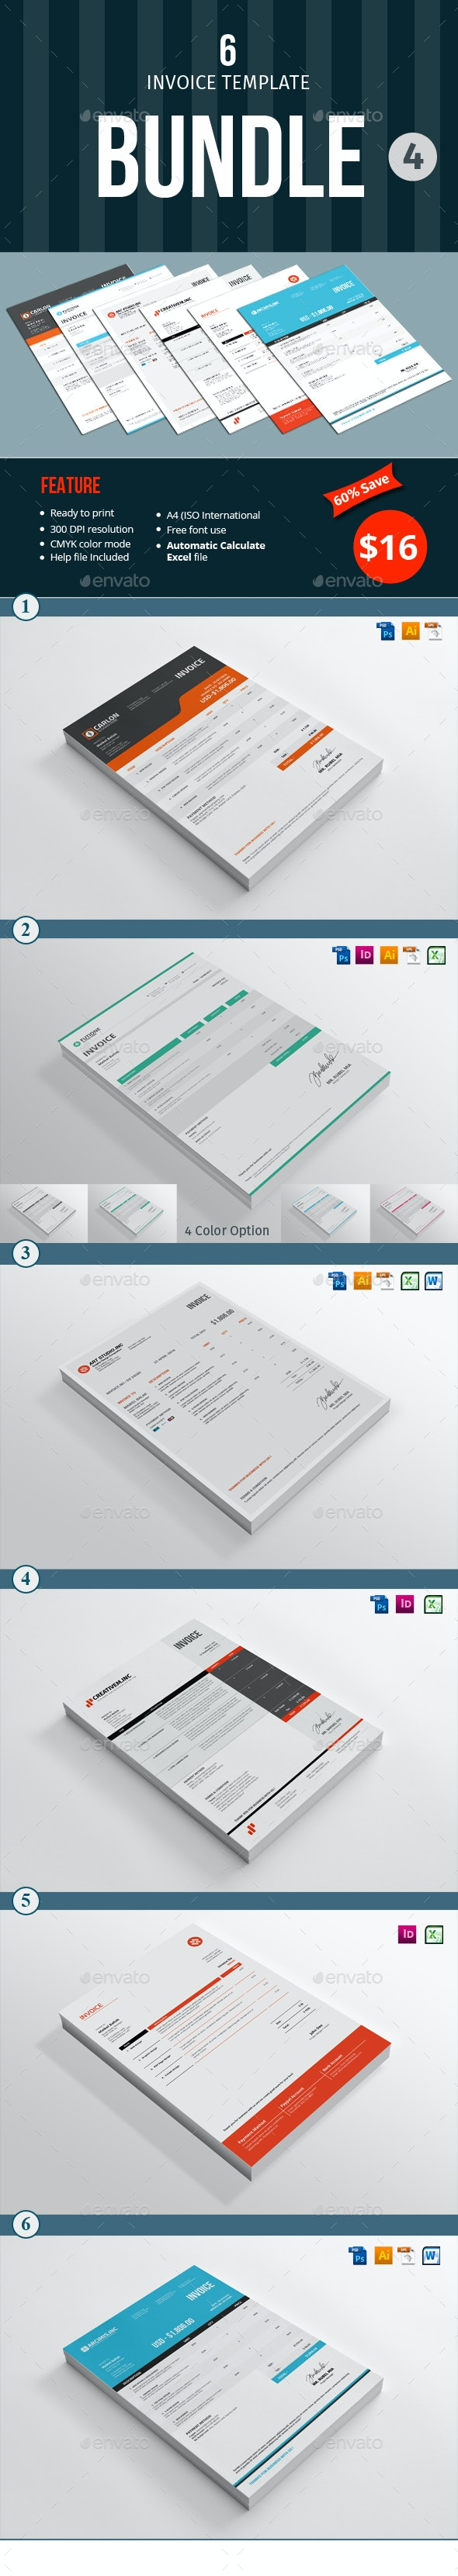 Invoice Template Bundle - 4 - Proposals & Invoices Stationery